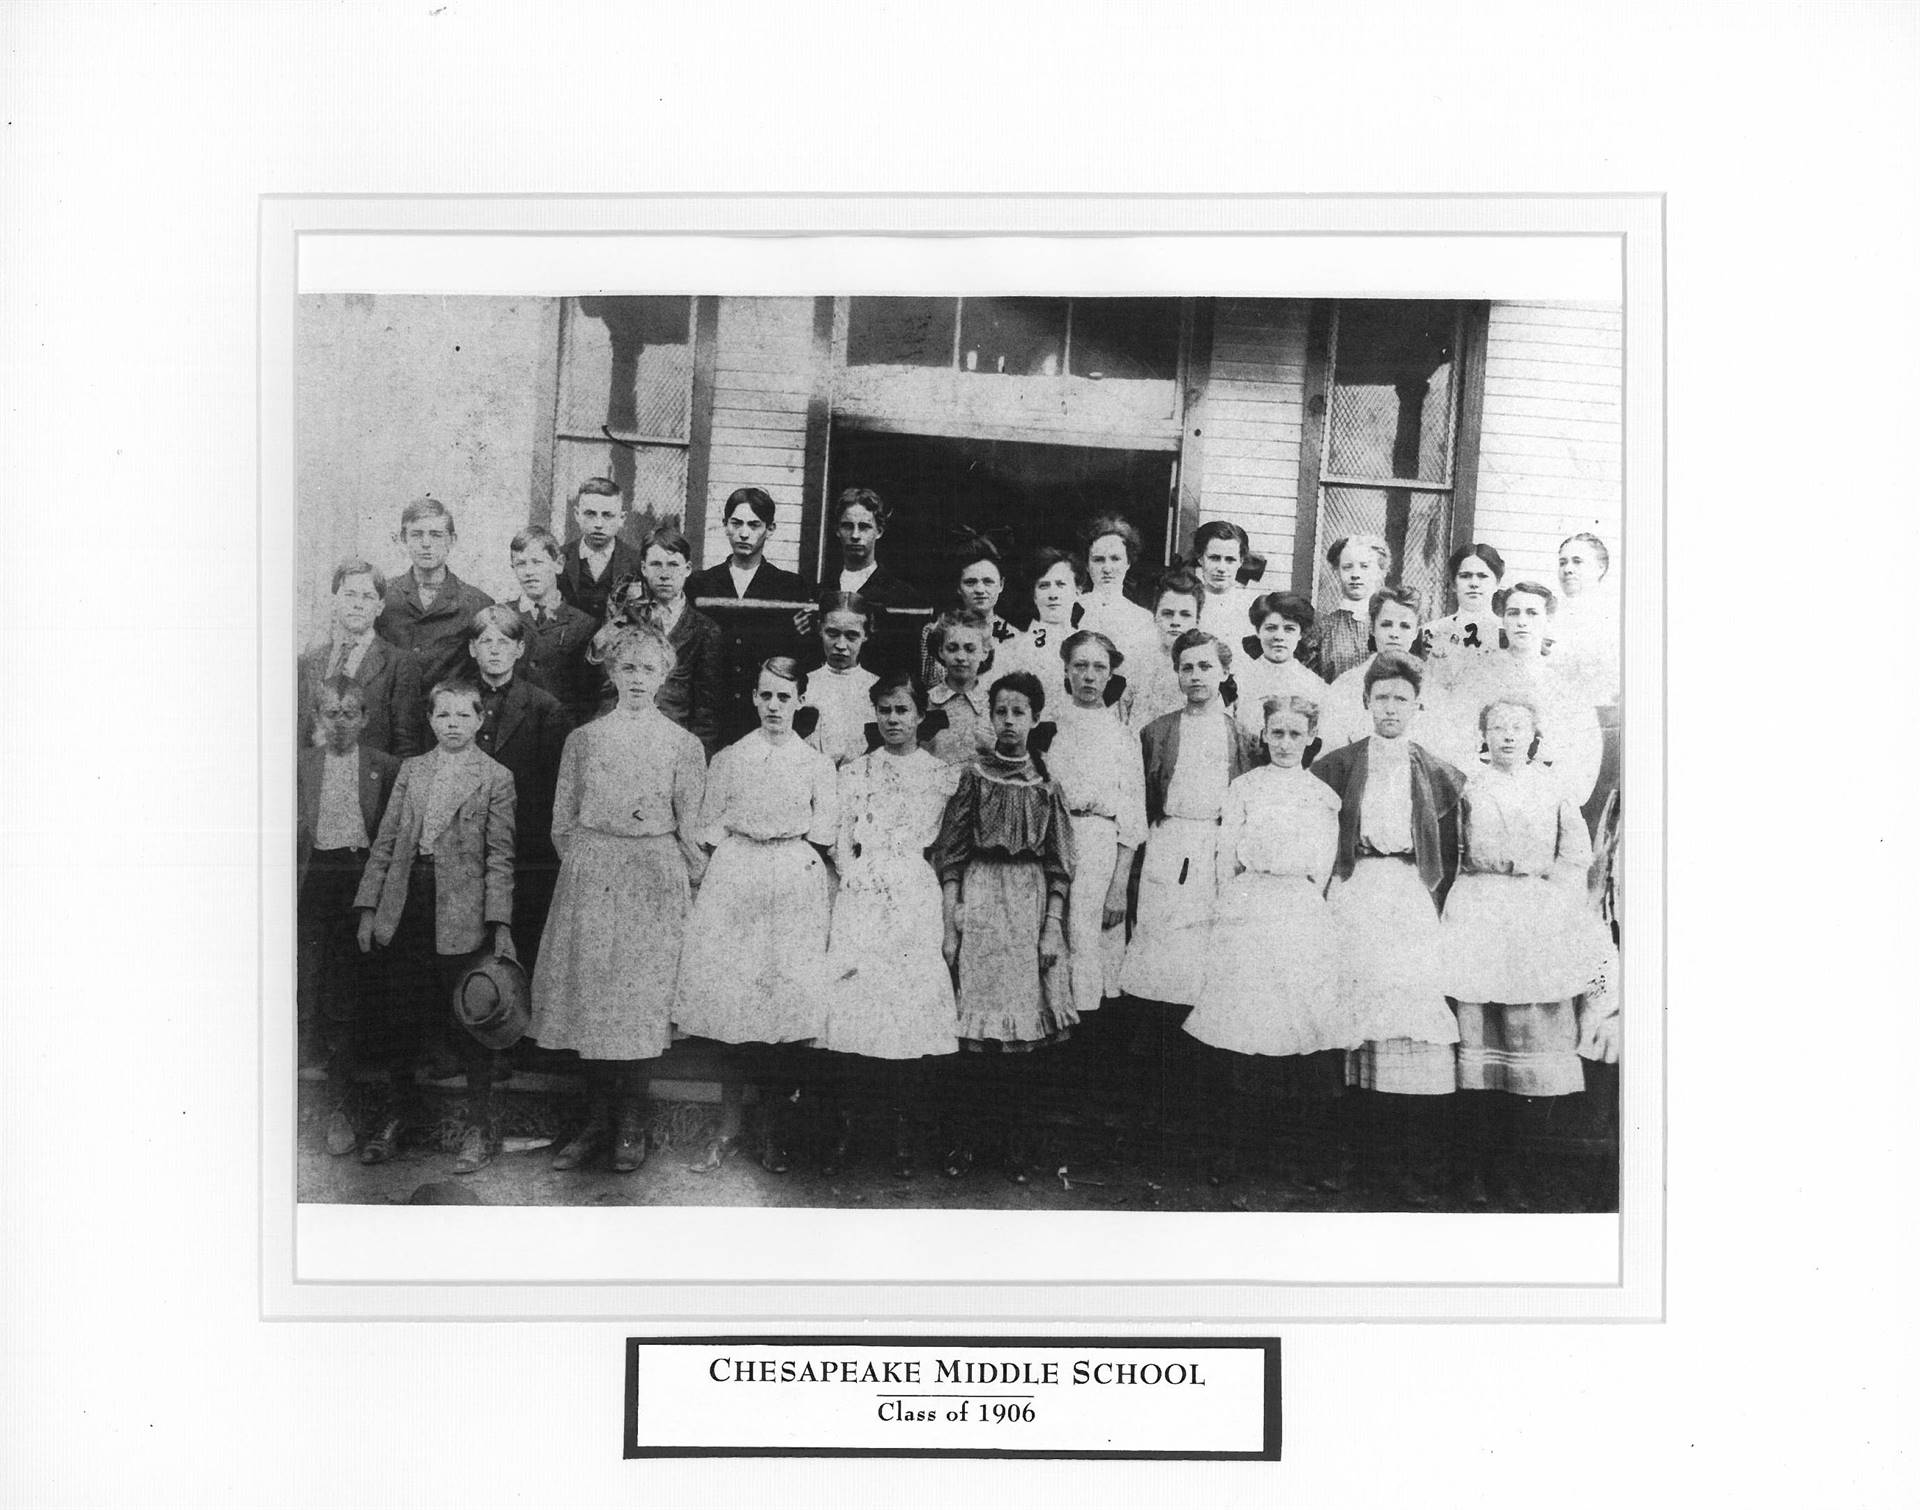 Chesapeake Middle School Class of 1906